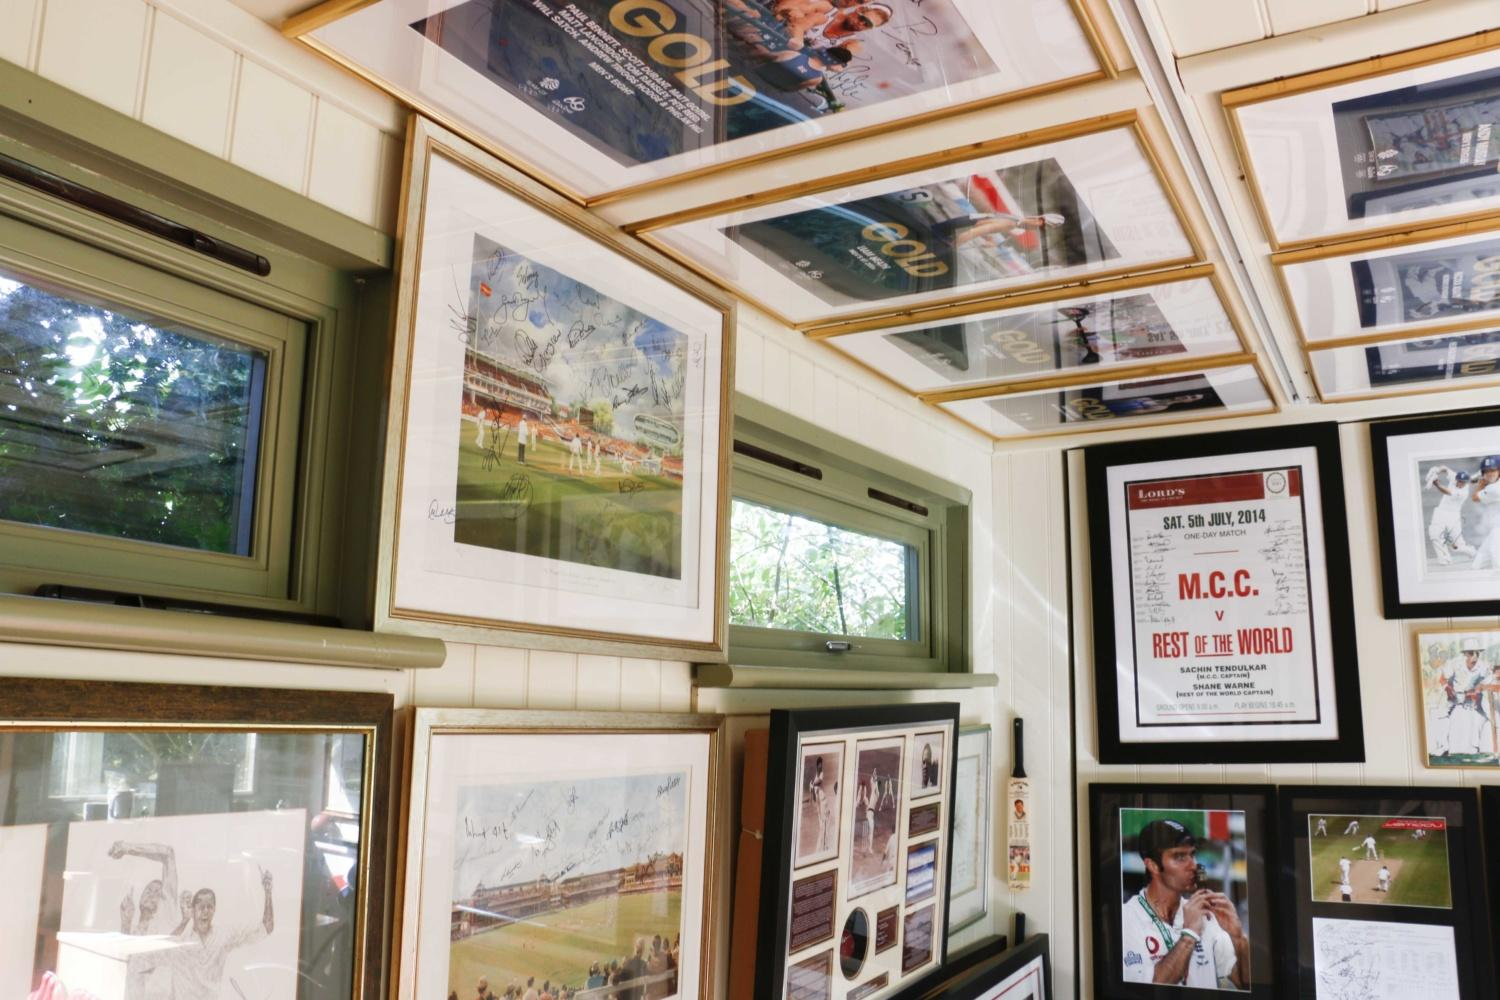 We visit a customer who uses their garden studio to house his vast collection of sports memorabilia